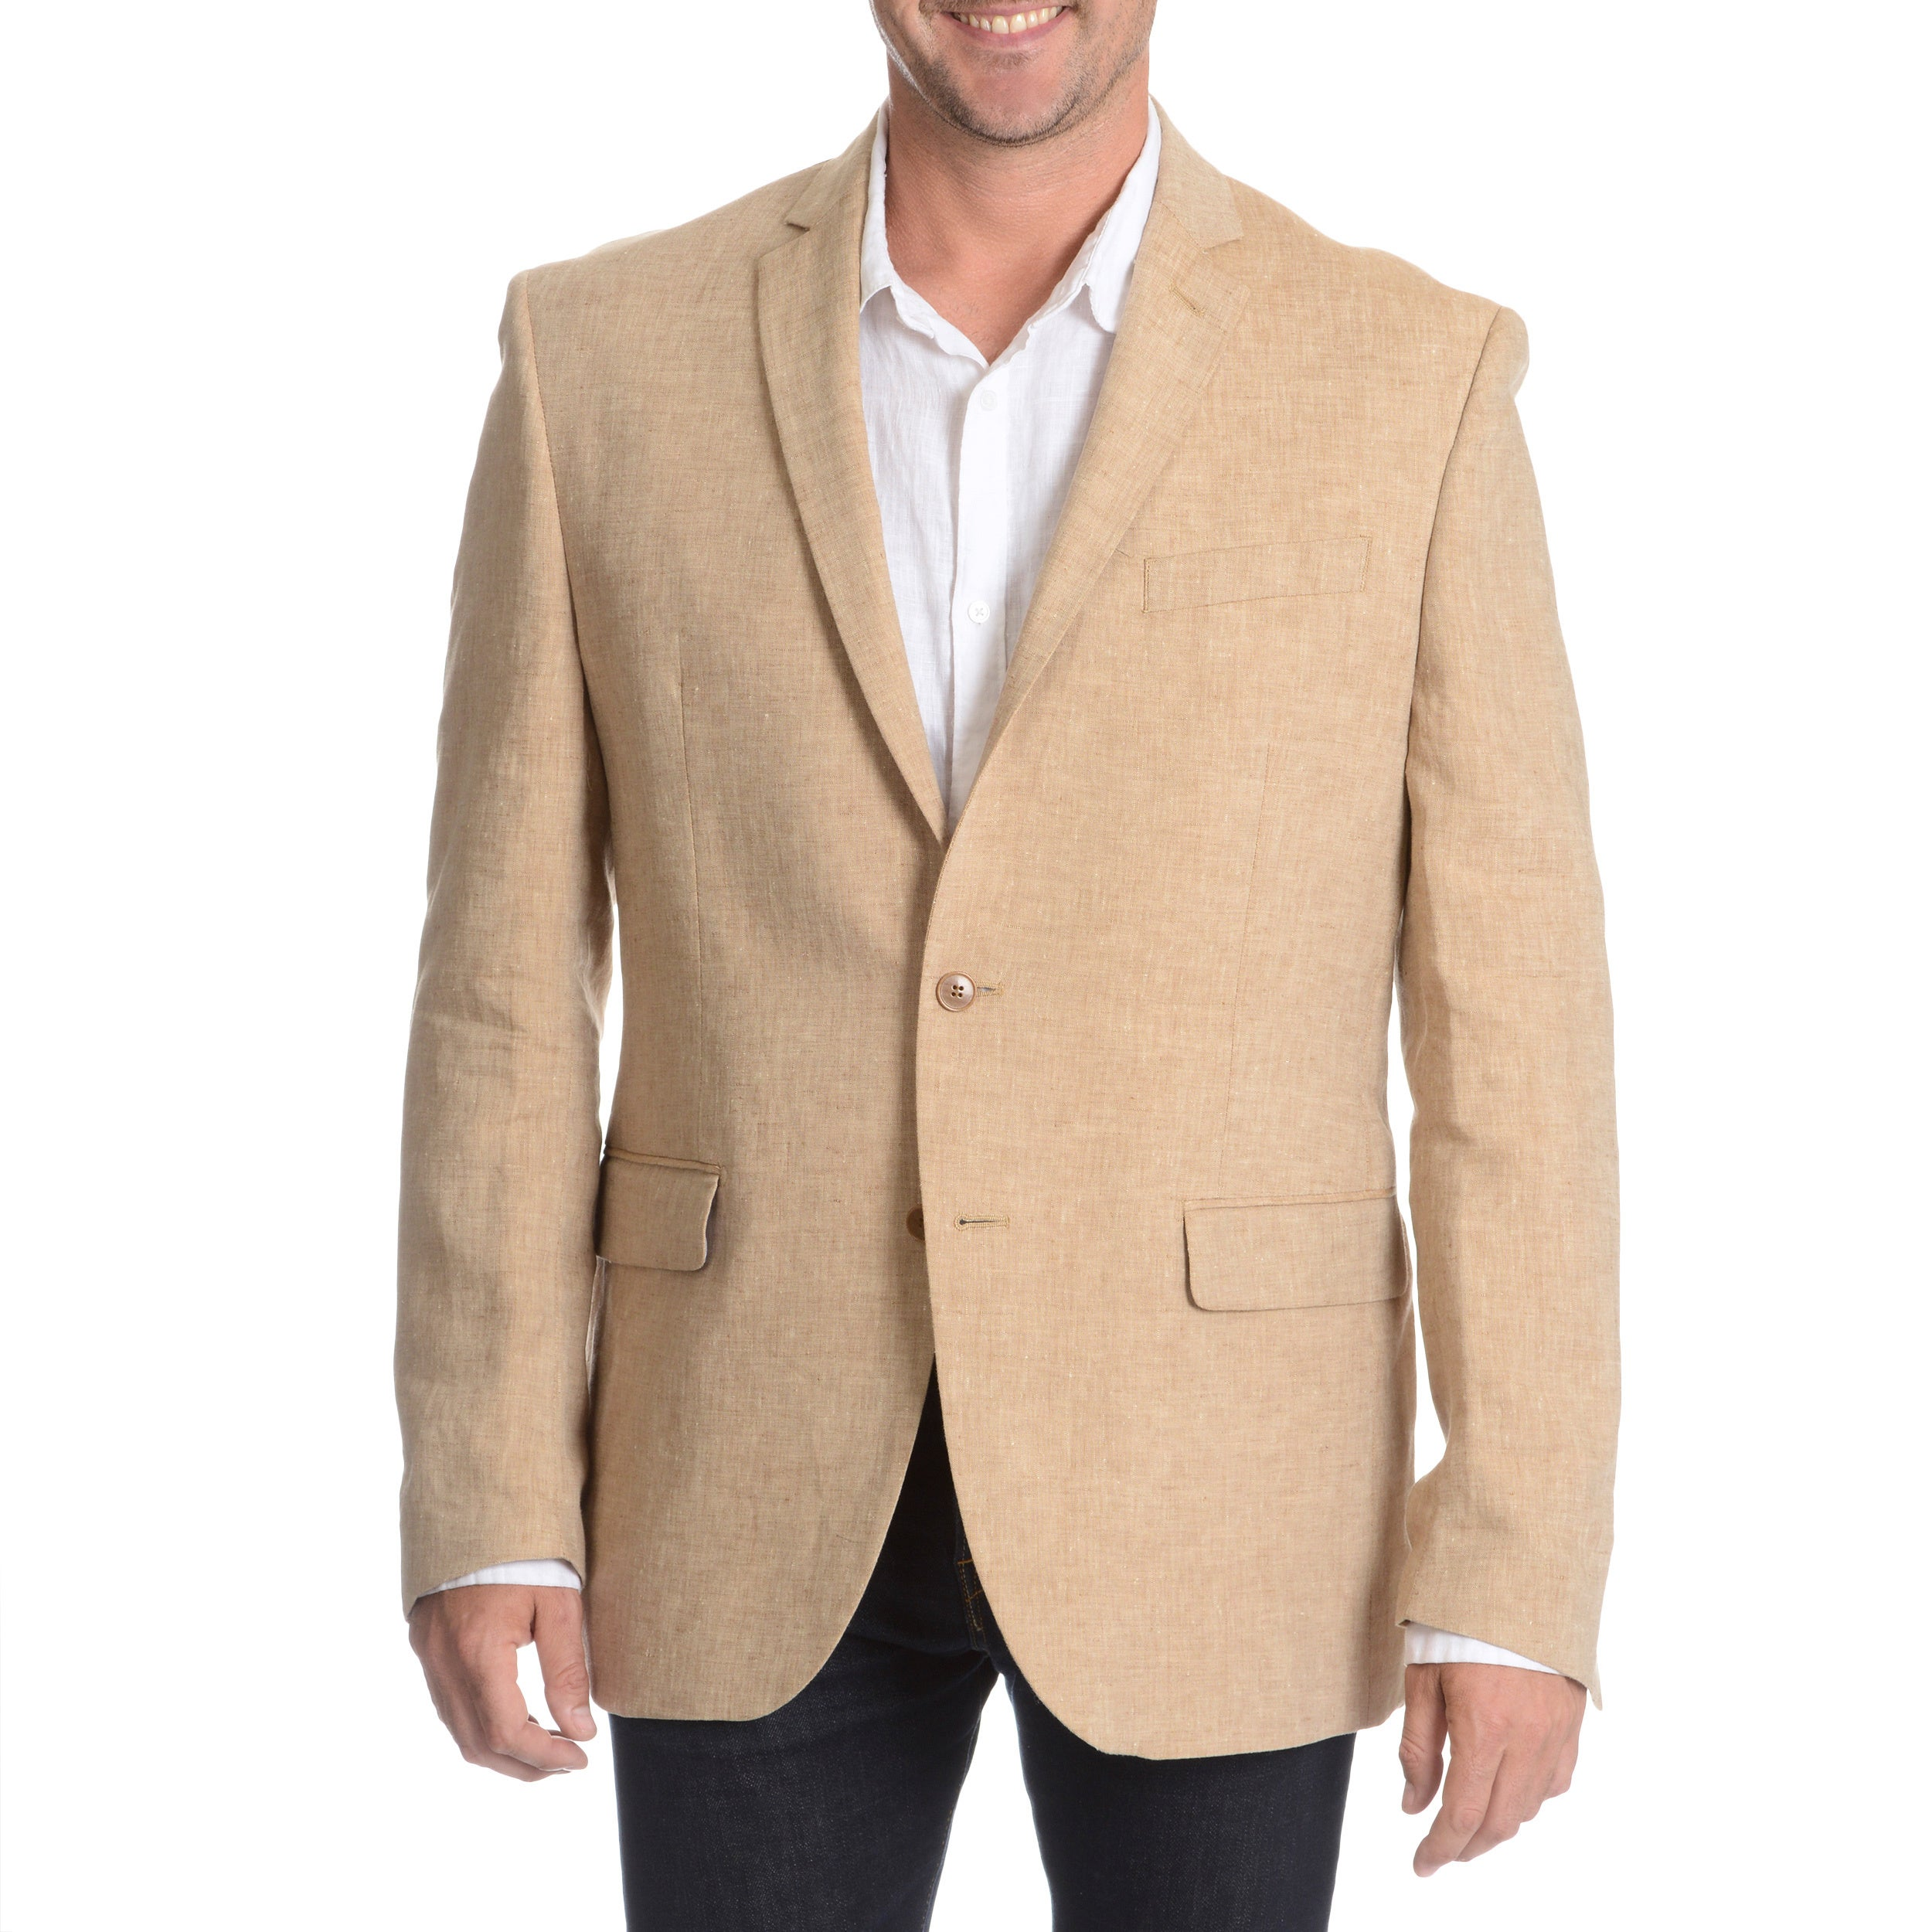 ecd33dc7564e Shop Daniel Hechter Men's Tan Linen Sport Coat - Free Shipping Today ...